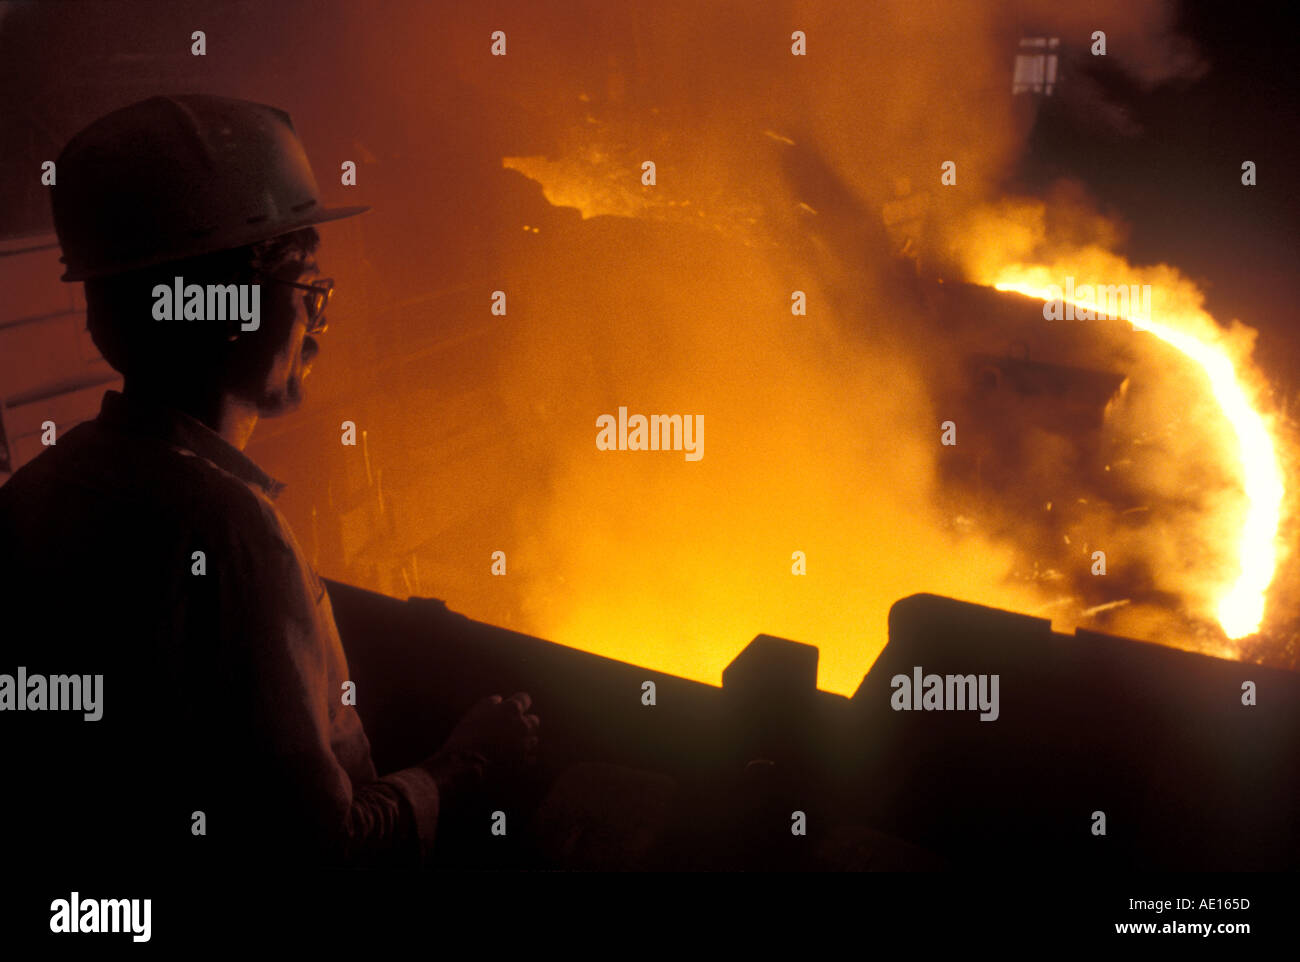 Steel furnace at SAIL Steel Authority of India Ltd plant Bokaro Jharkhand India - Stock Image